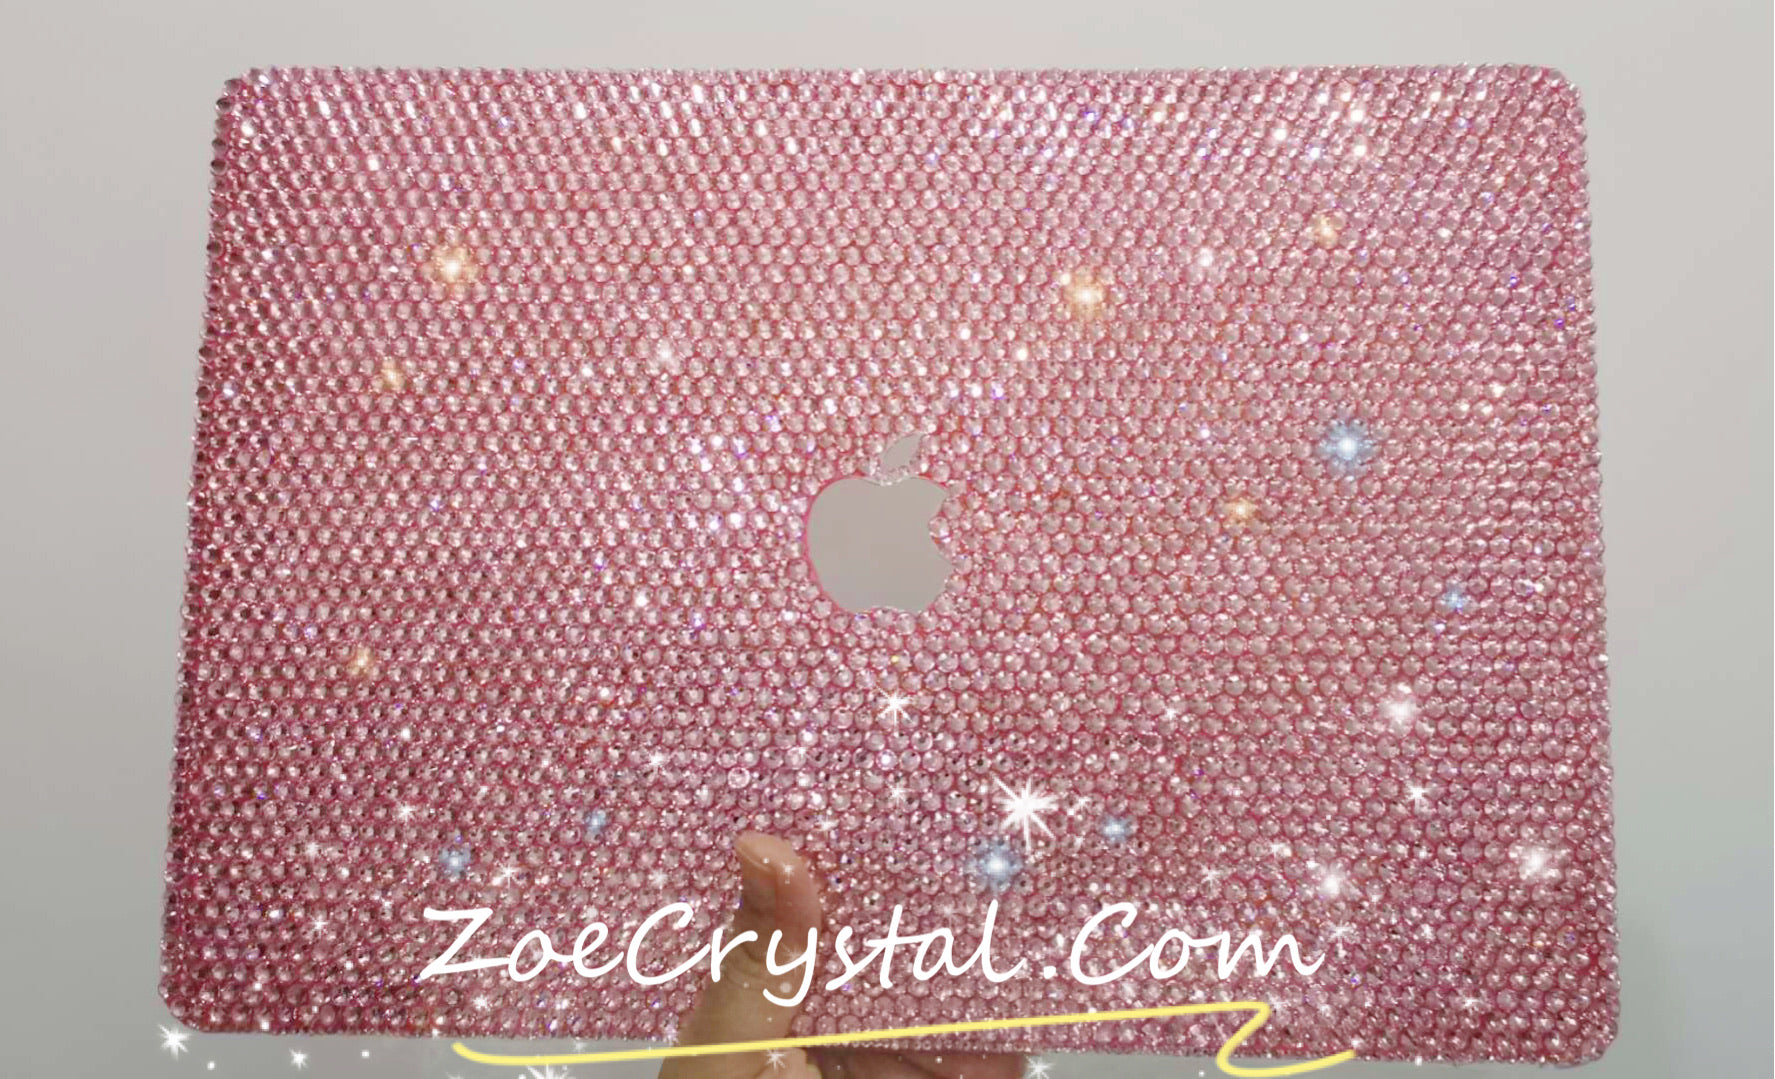 Macbook Rose gold Crystal Case